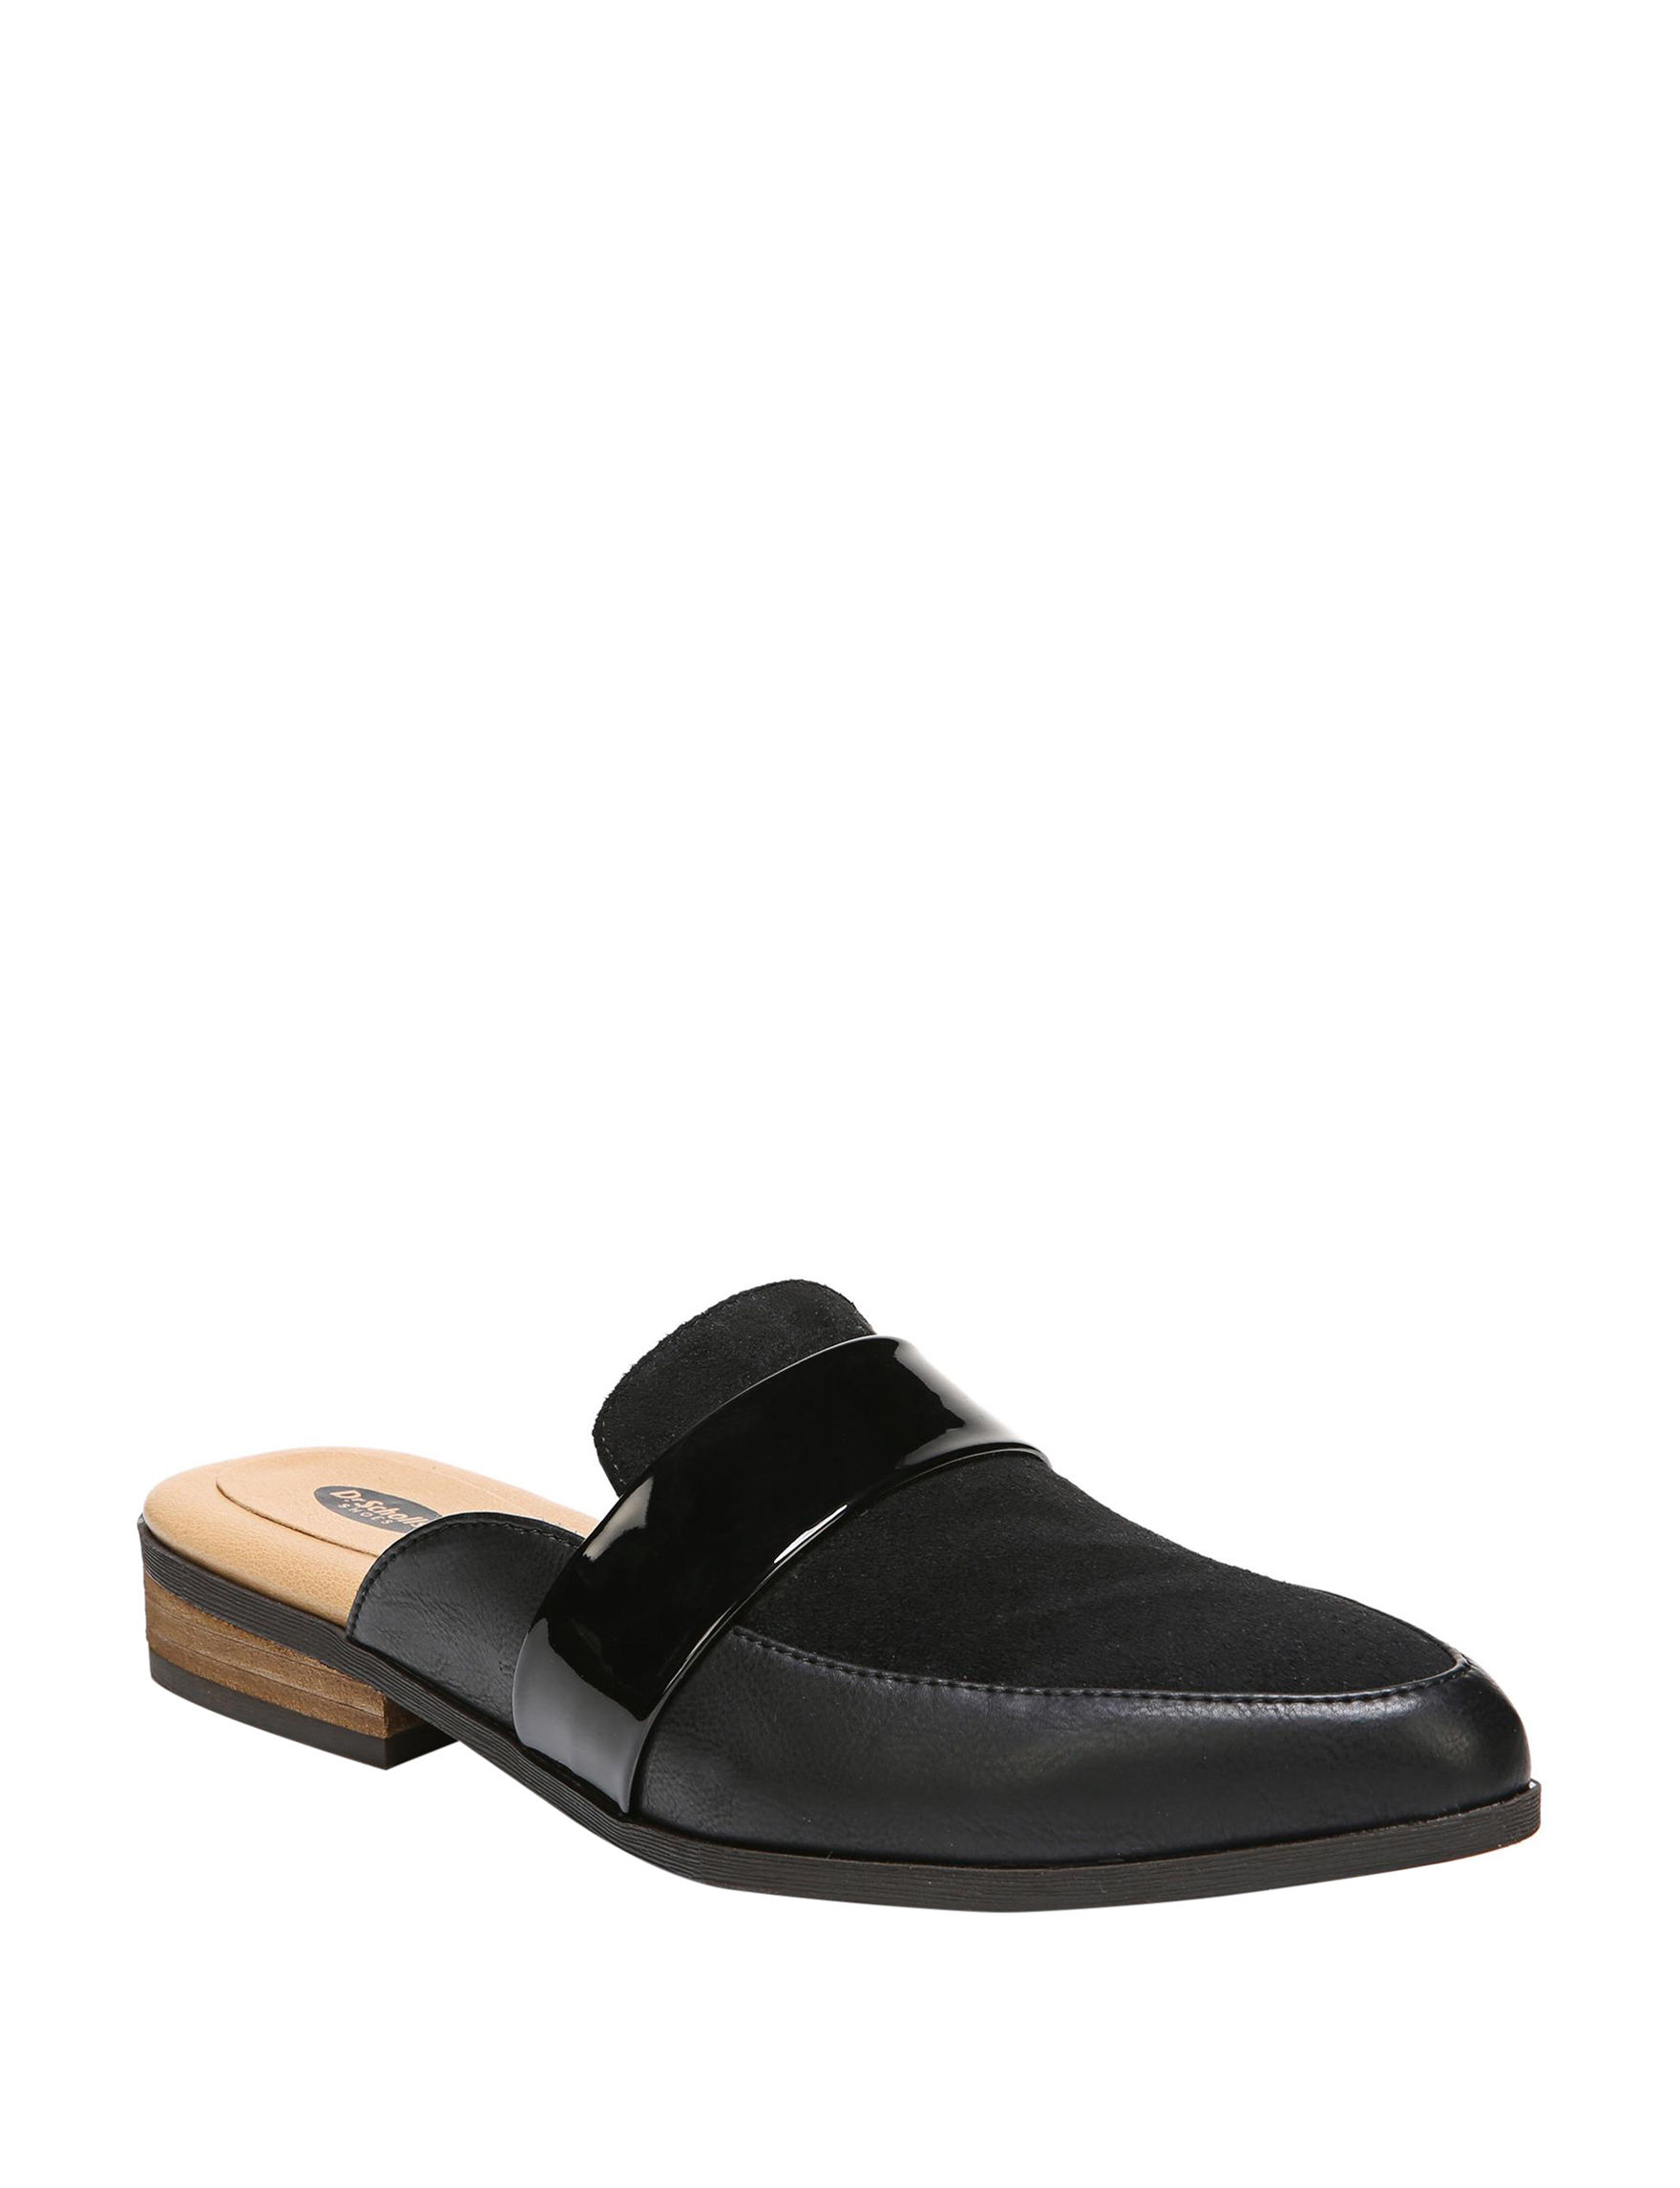 Dr. Scholl's Black Flat Sandals